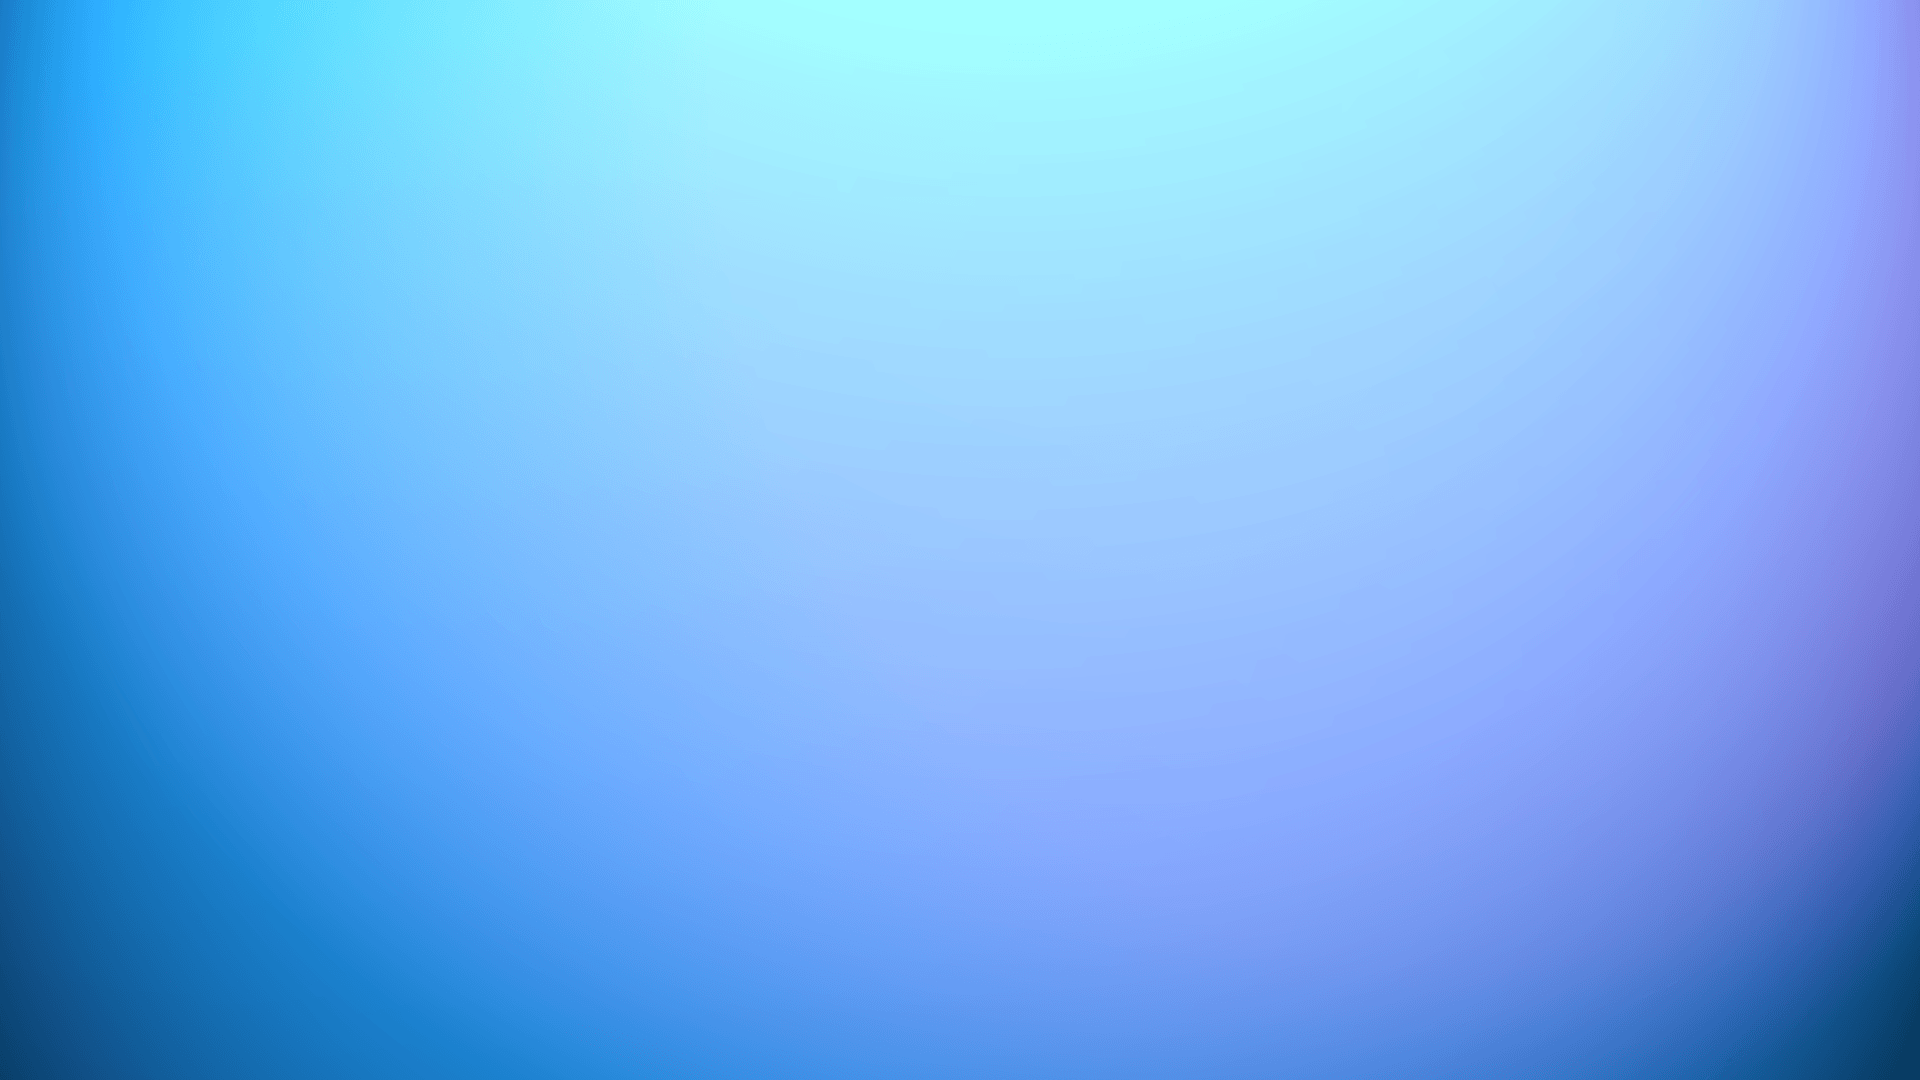 wallpaper background gradient blue -#main